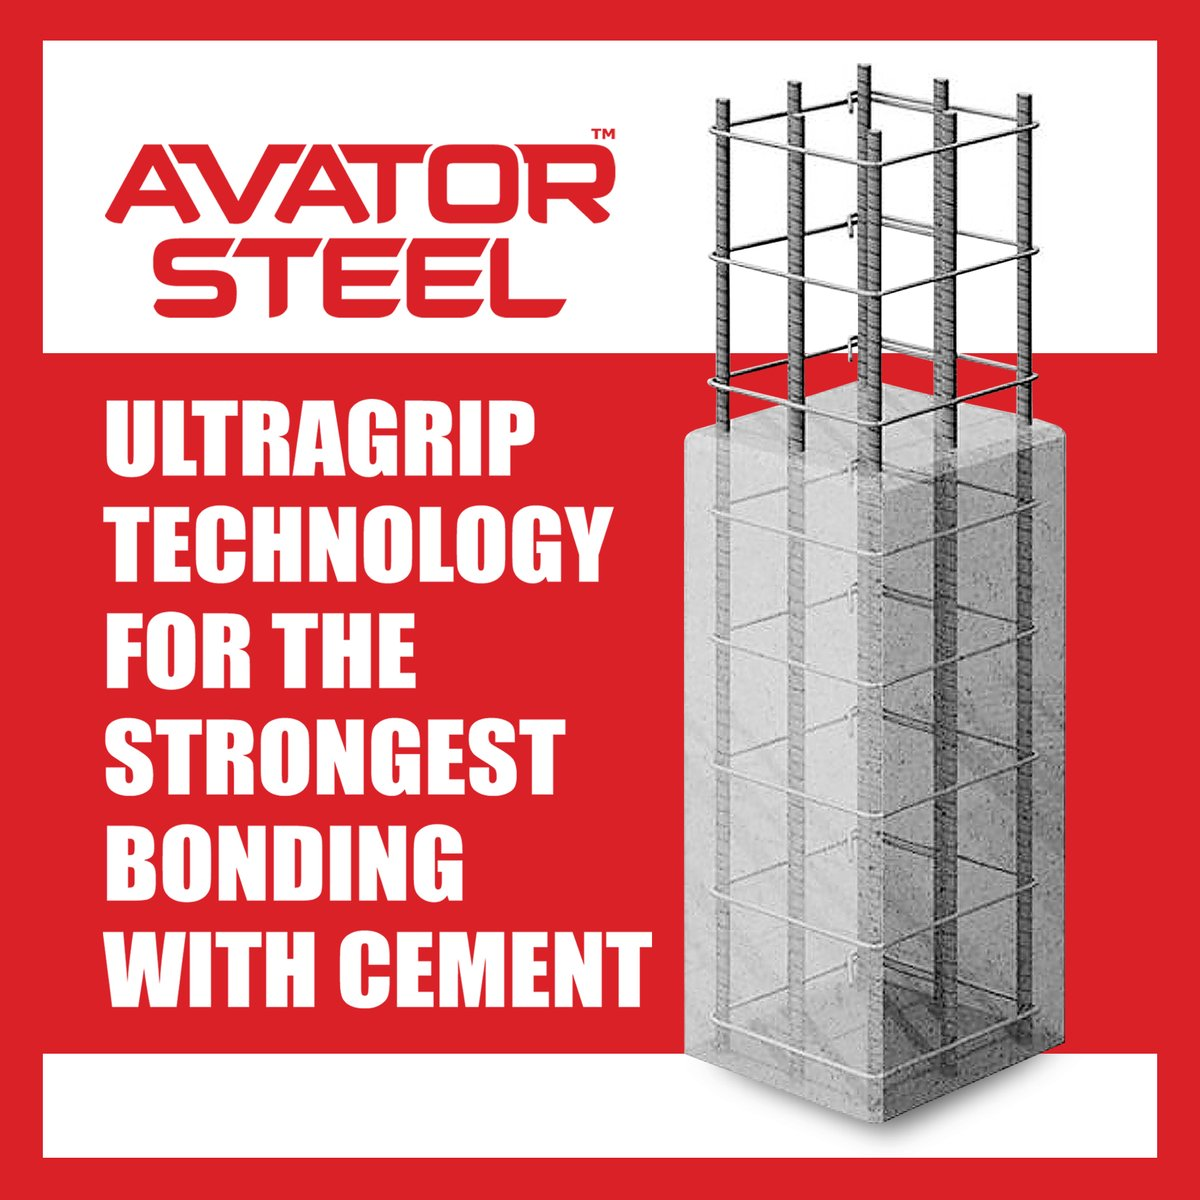 #AvatorSteel TMT bars are made with ultra grip technology which allows it to have the strongest bonding with cement.  For a lifetime of strength and stability, build your dream home with us.